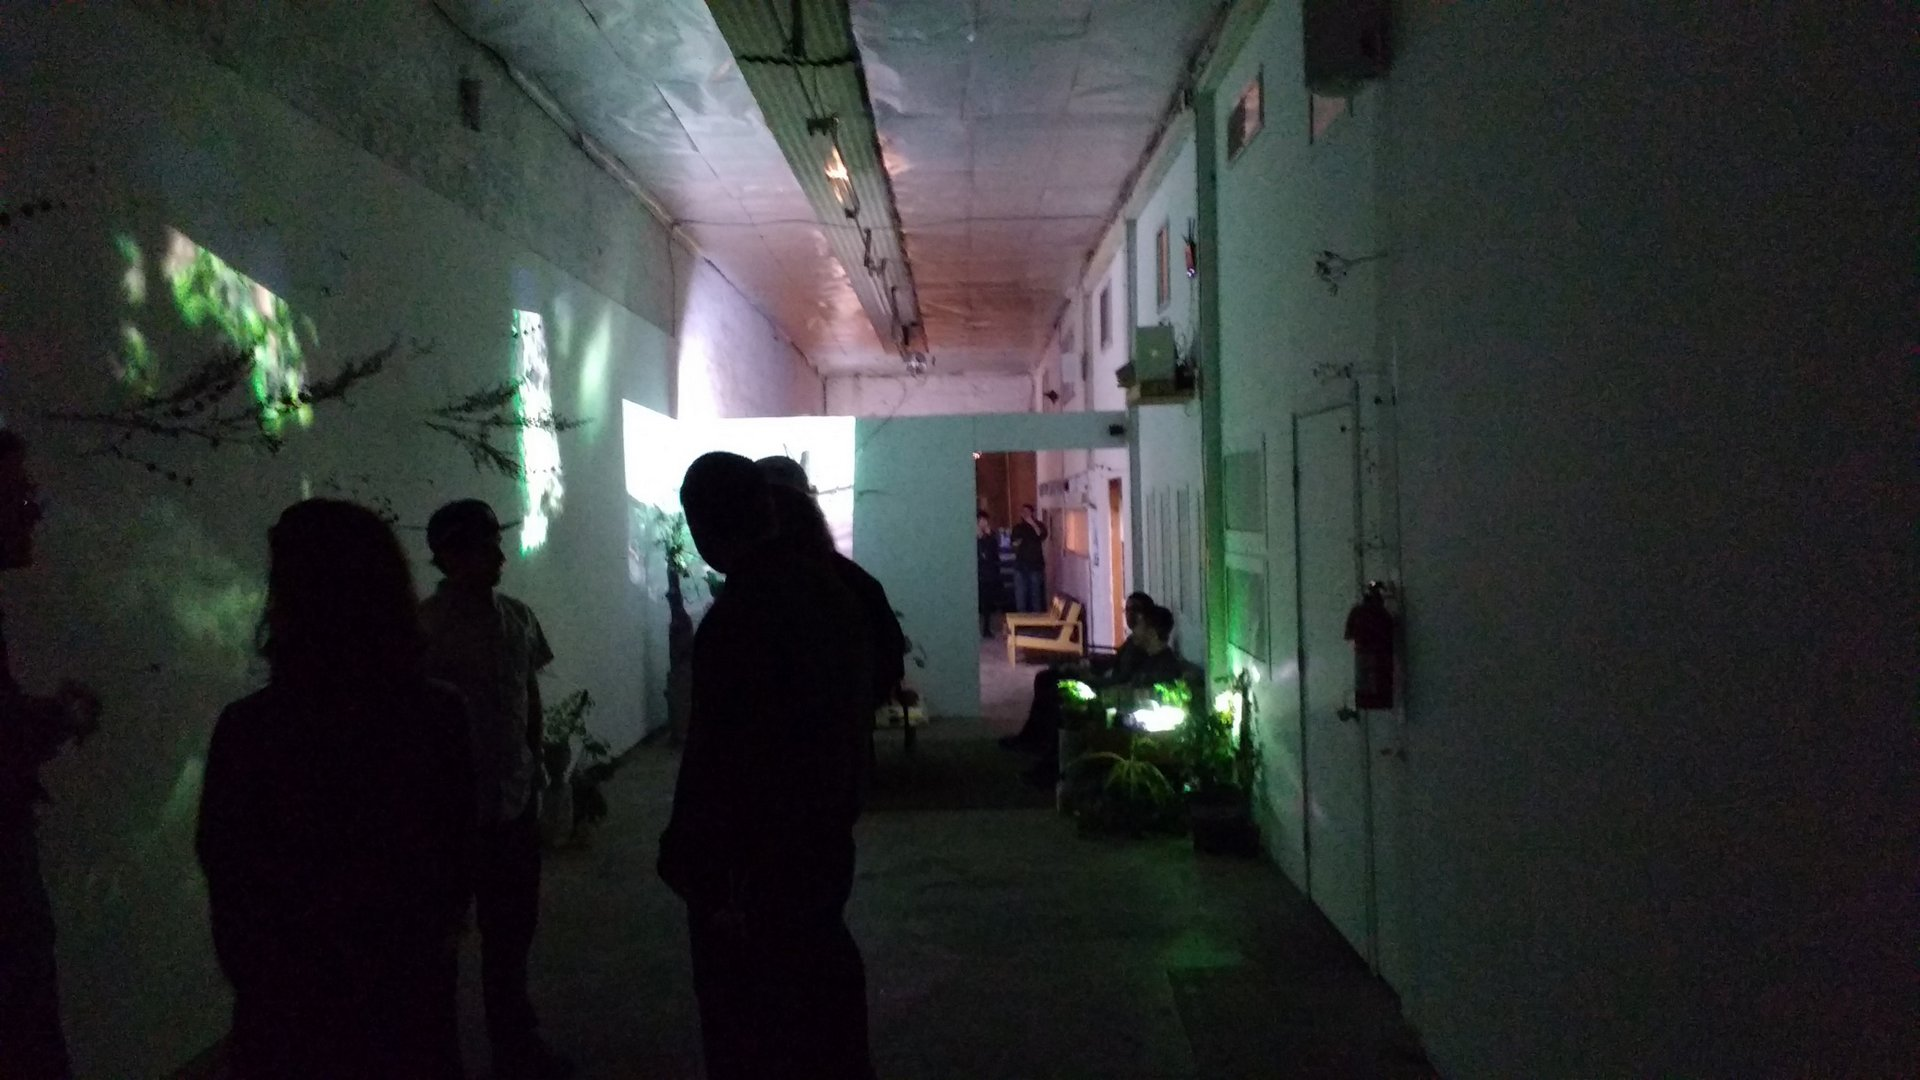 view down the long, narrow art space at 1255 6th street in Los Angeles